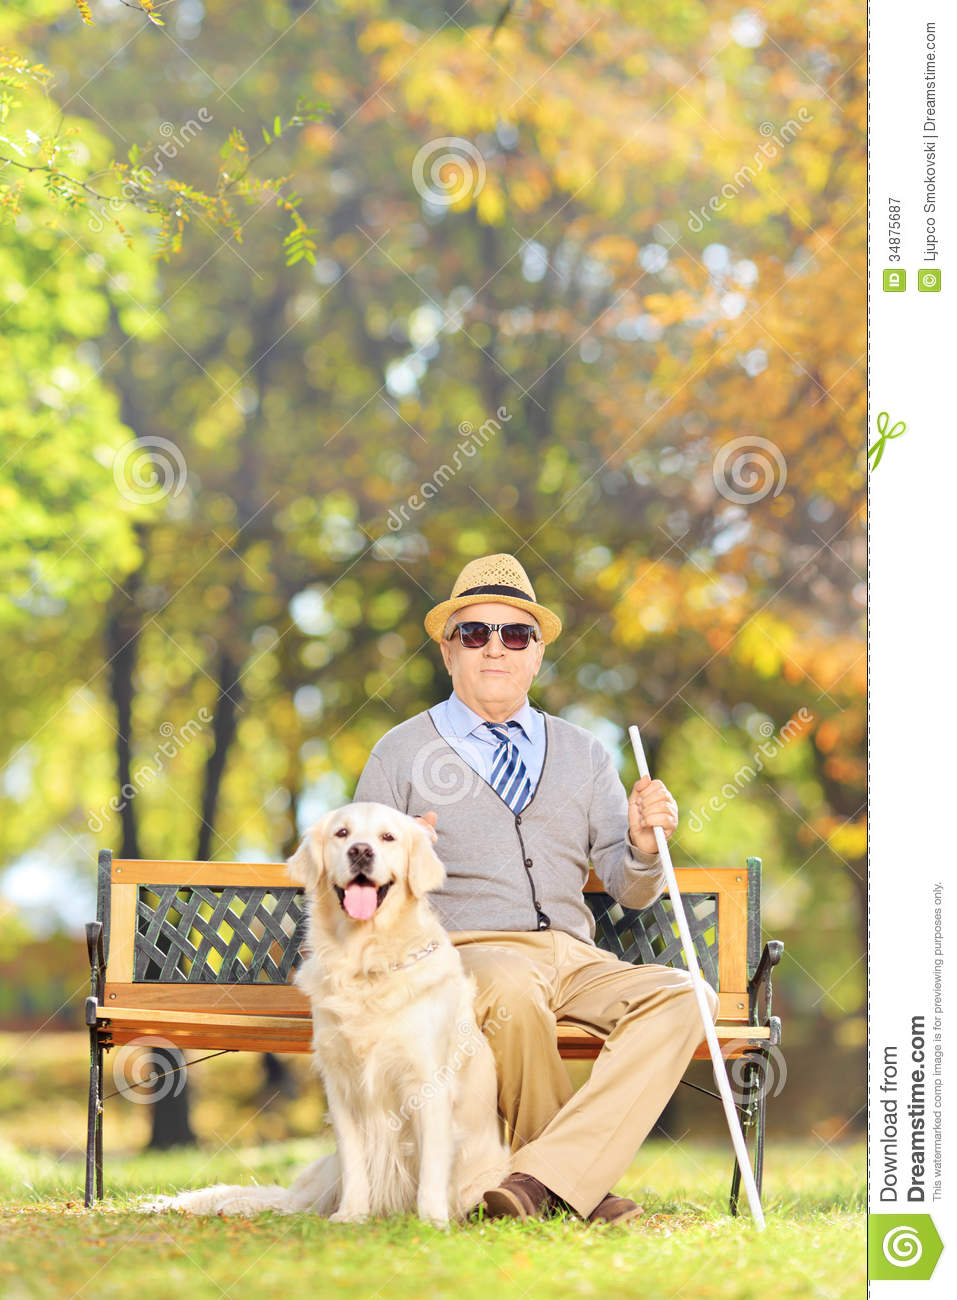 ... sitting on a wooden bench with his labrador retriever dog, in a park